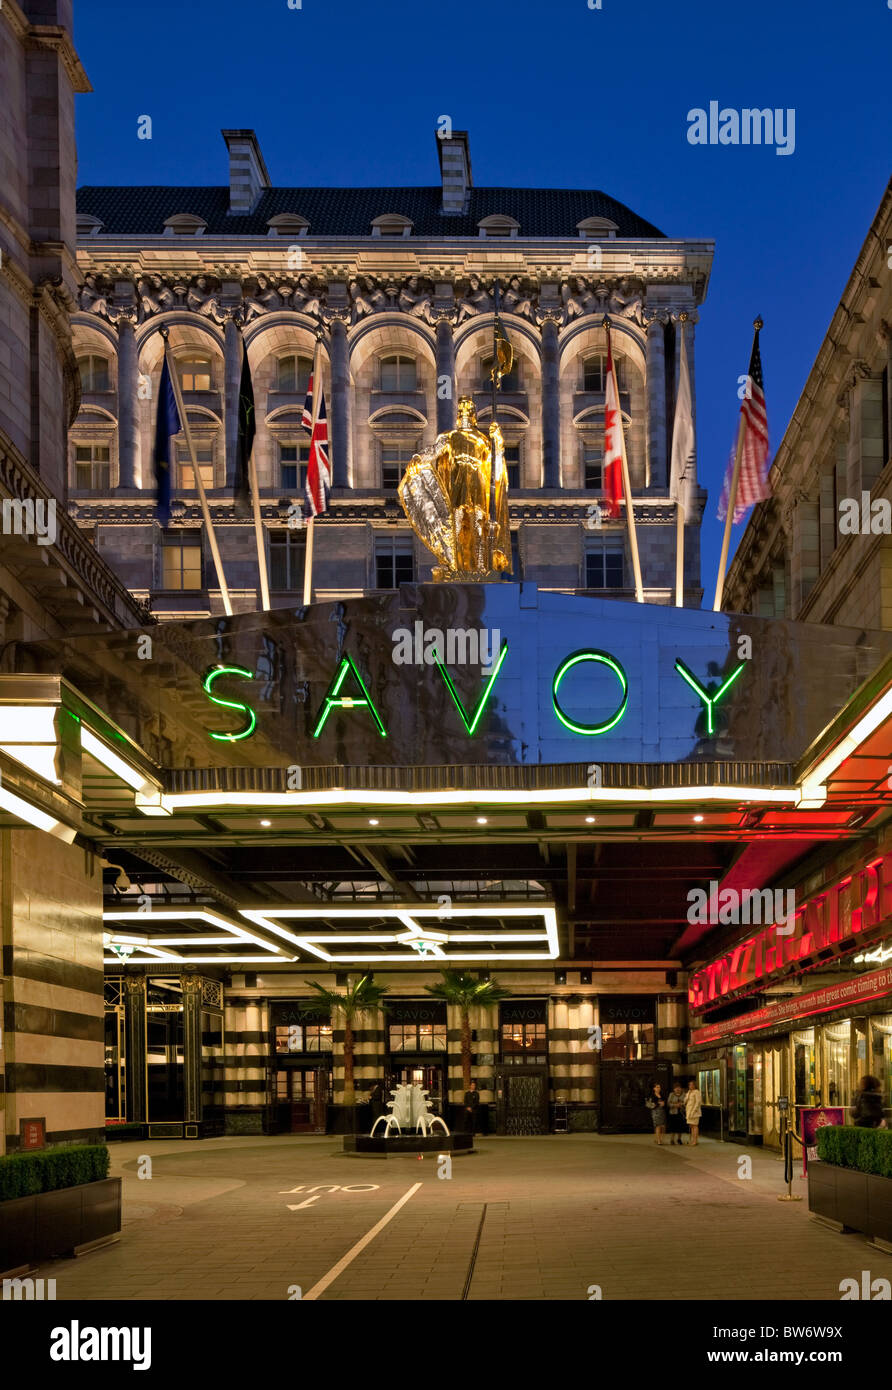 Entrance courtyard to the refurbished Savoy Hotel in London - reopened in October 2010. - Stock Image